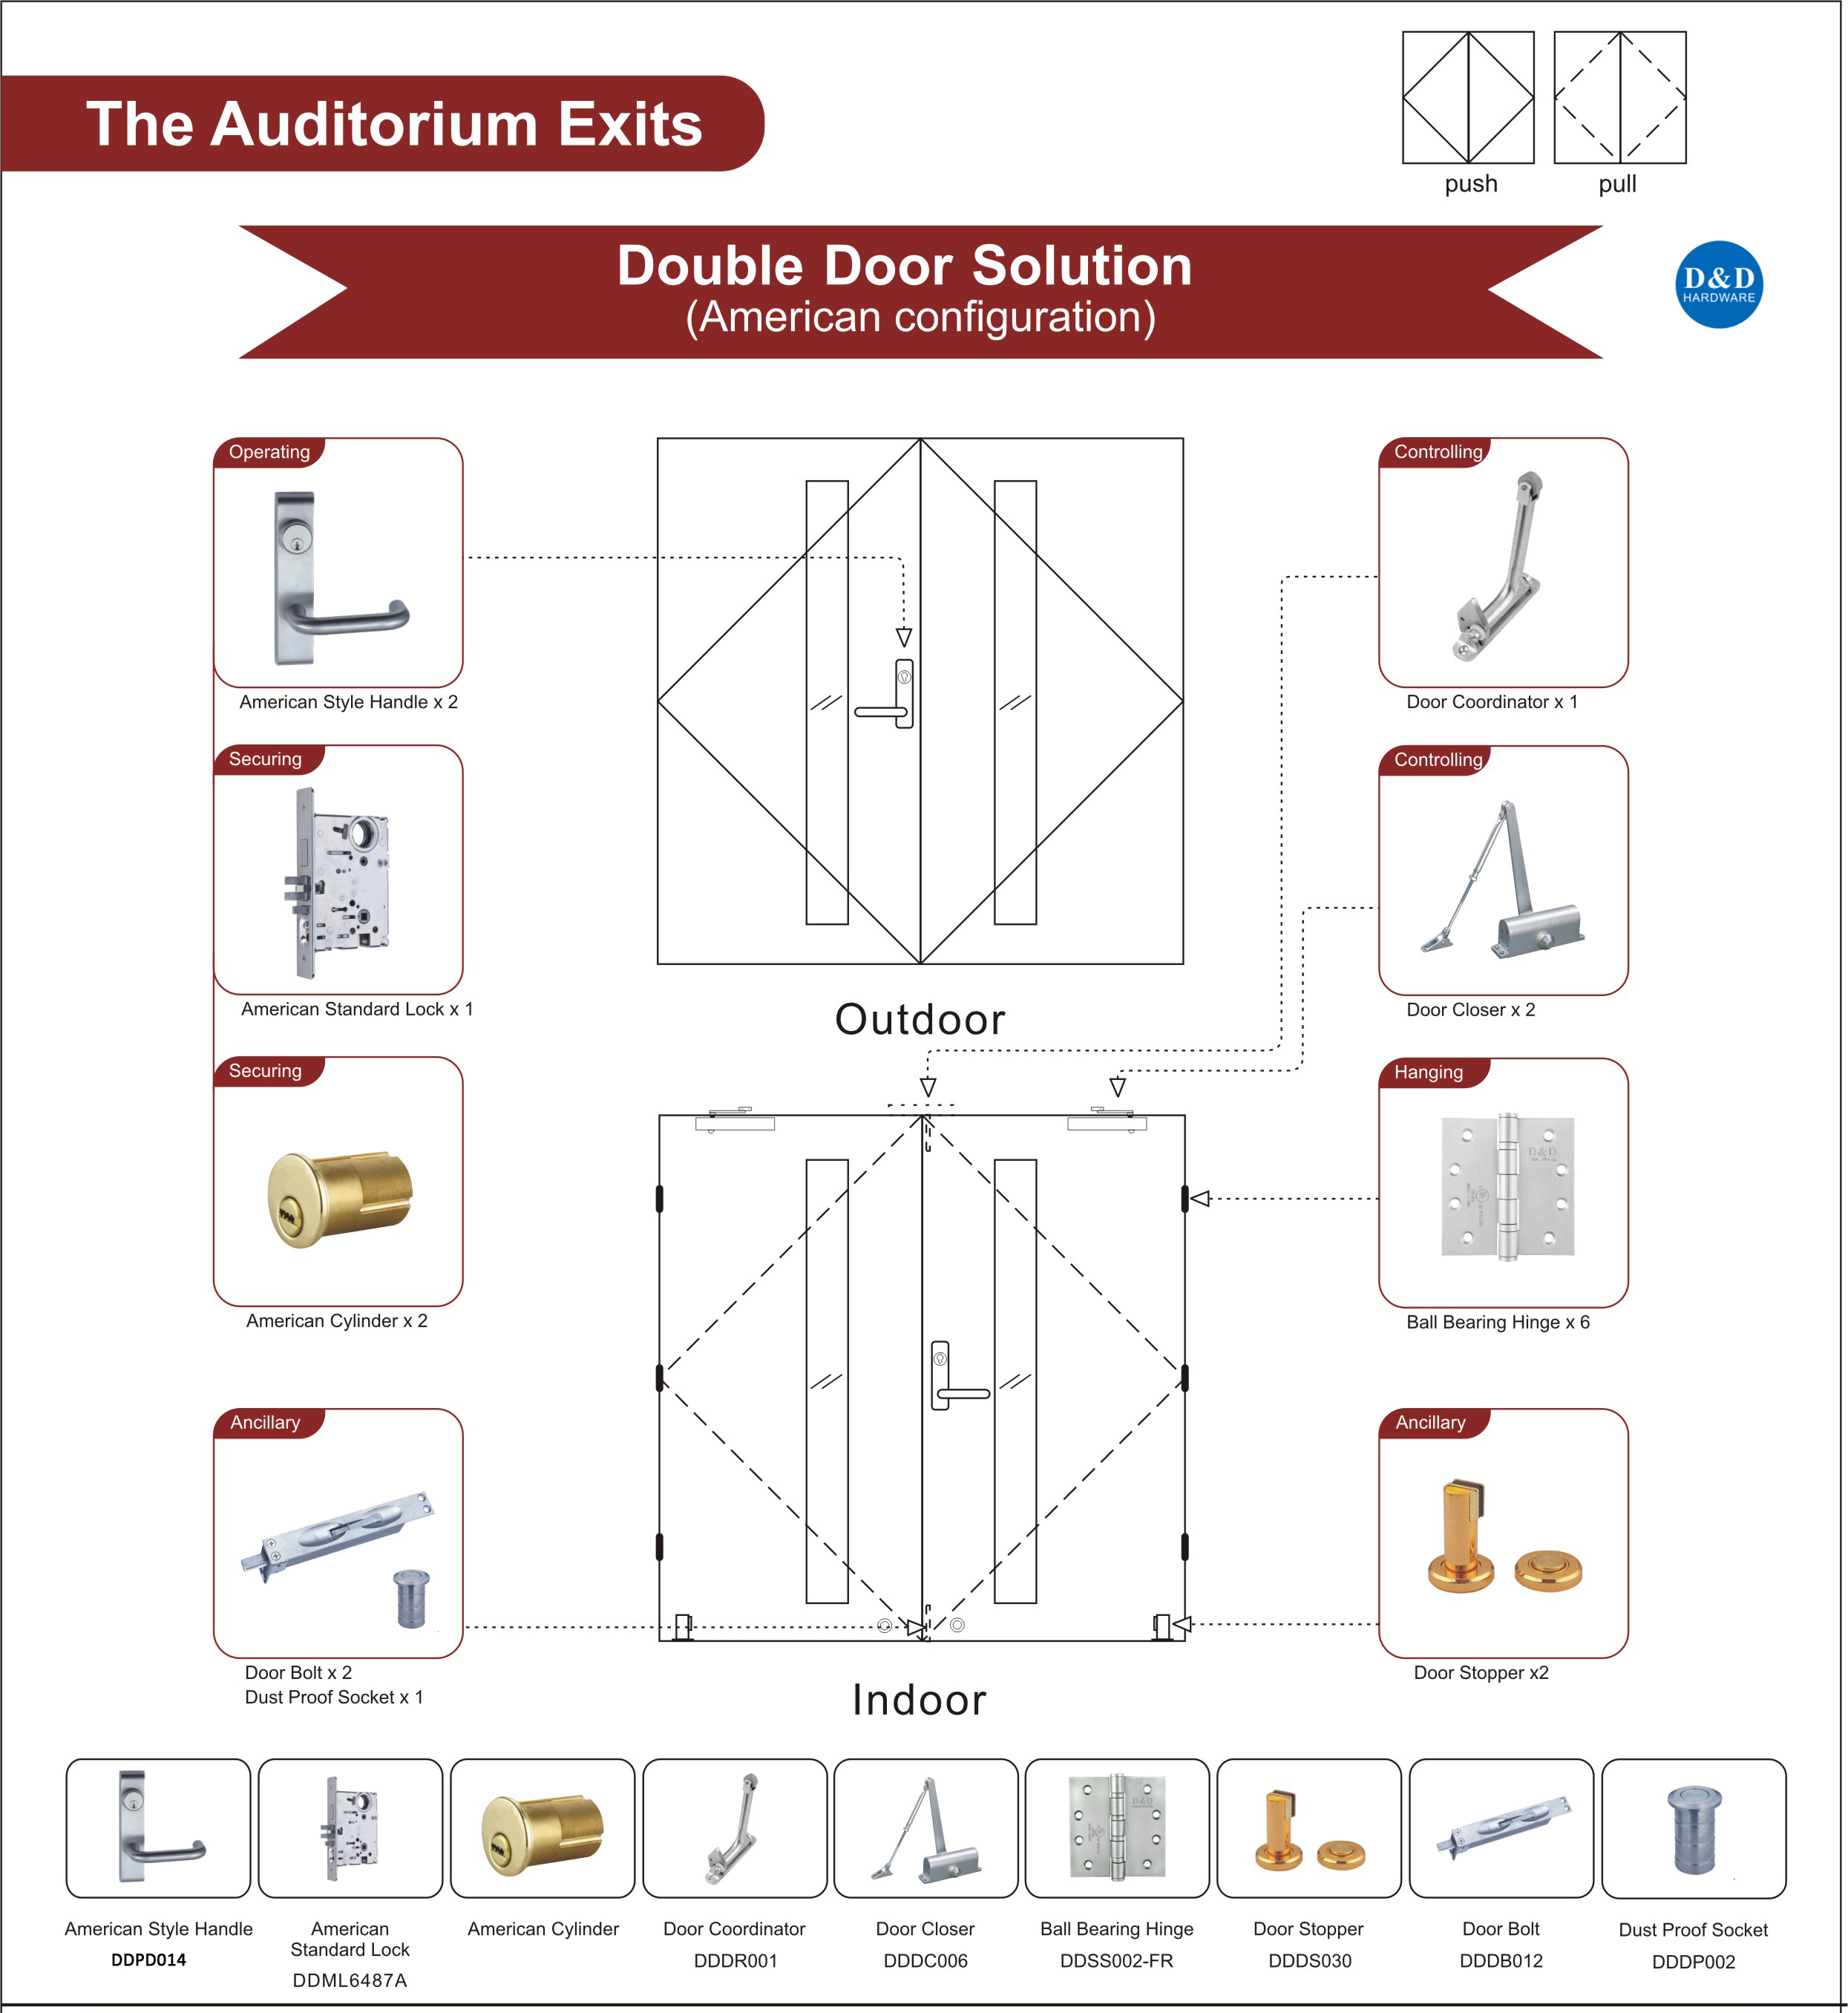 Fire Rated Wooden Door Hardware For Auditorium Exits Double Door